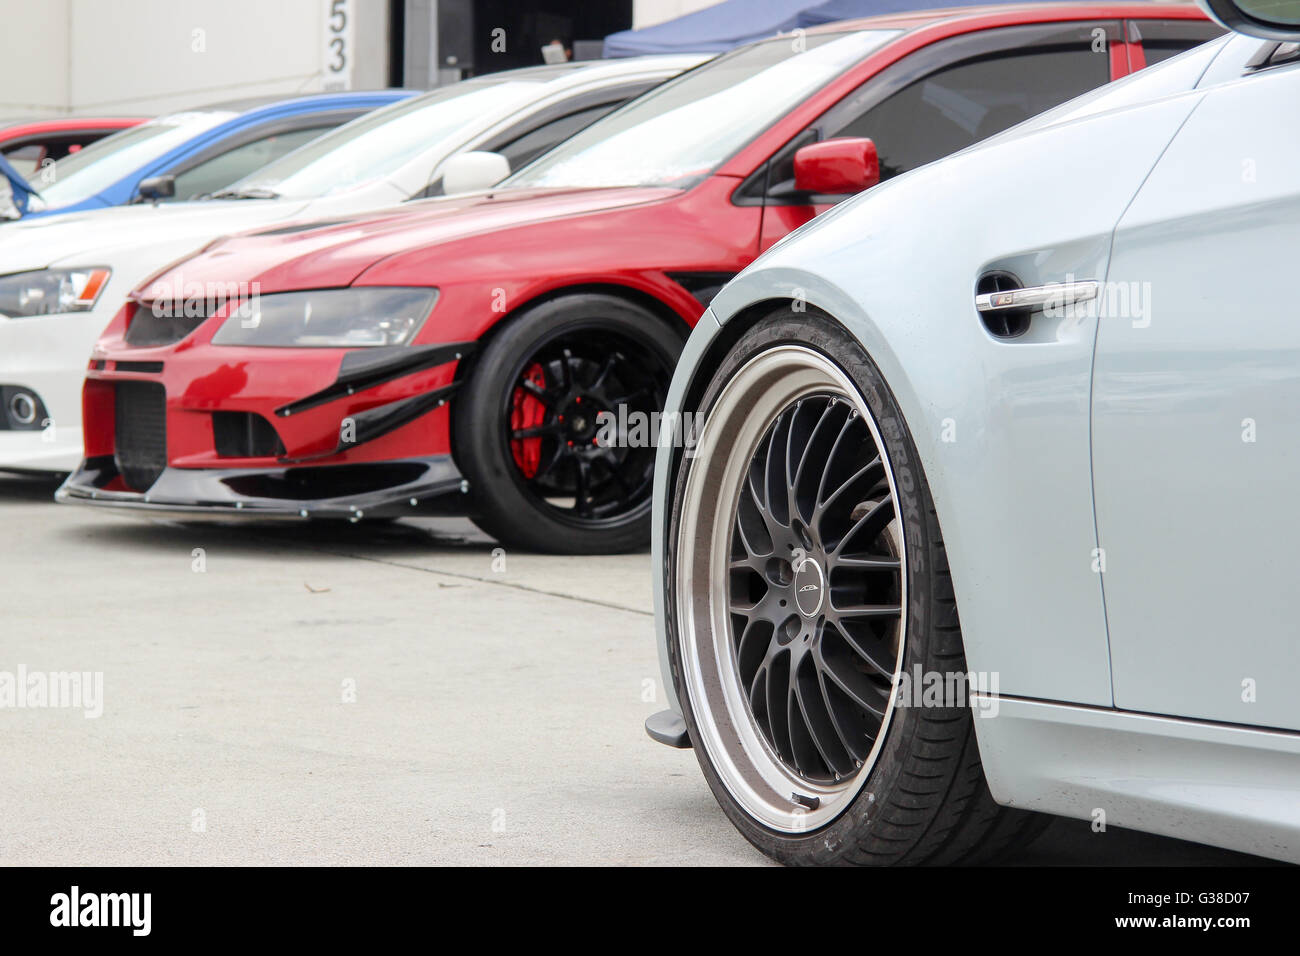 Jdm Car High Resolution Stock Photography And Images Alamy